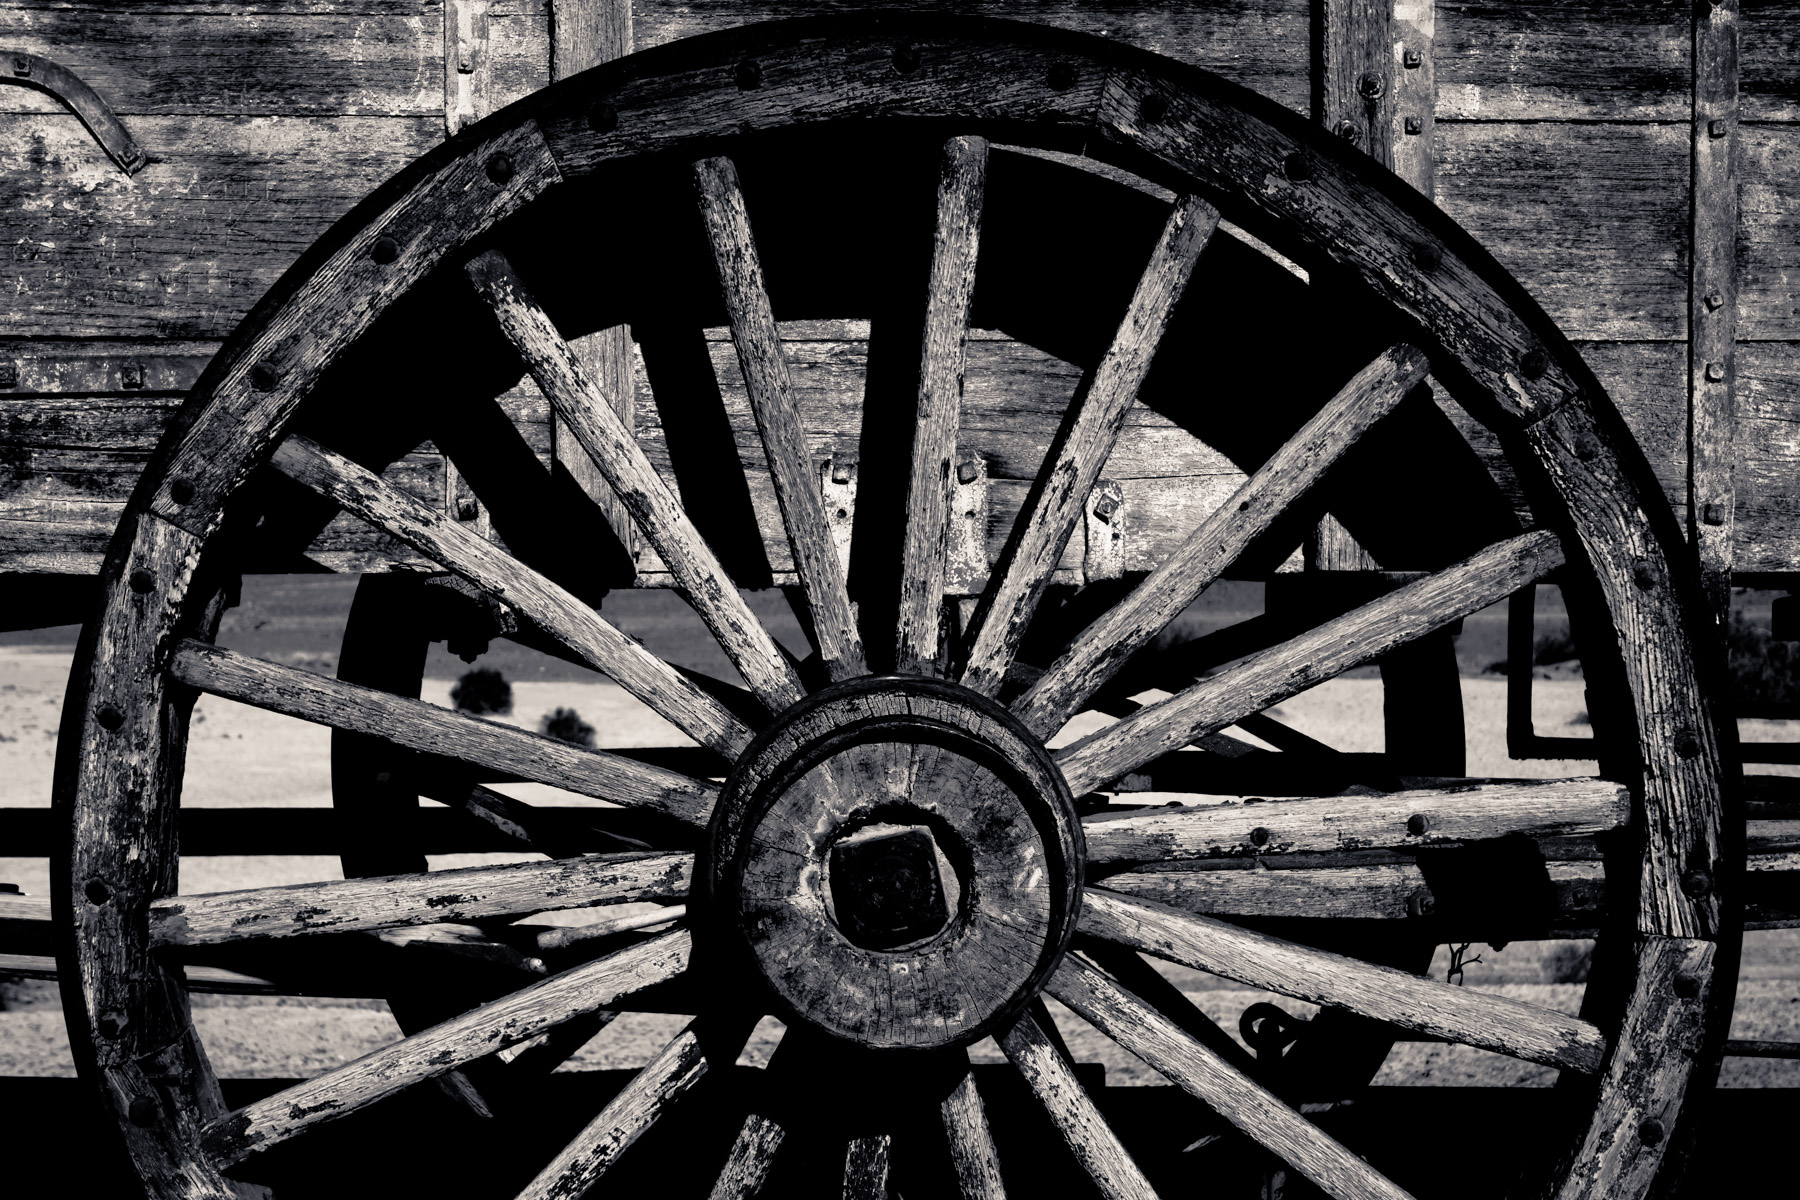 Detail of a wheel on an old borax-hauling wagon train on display in California's Death Valley National Park.